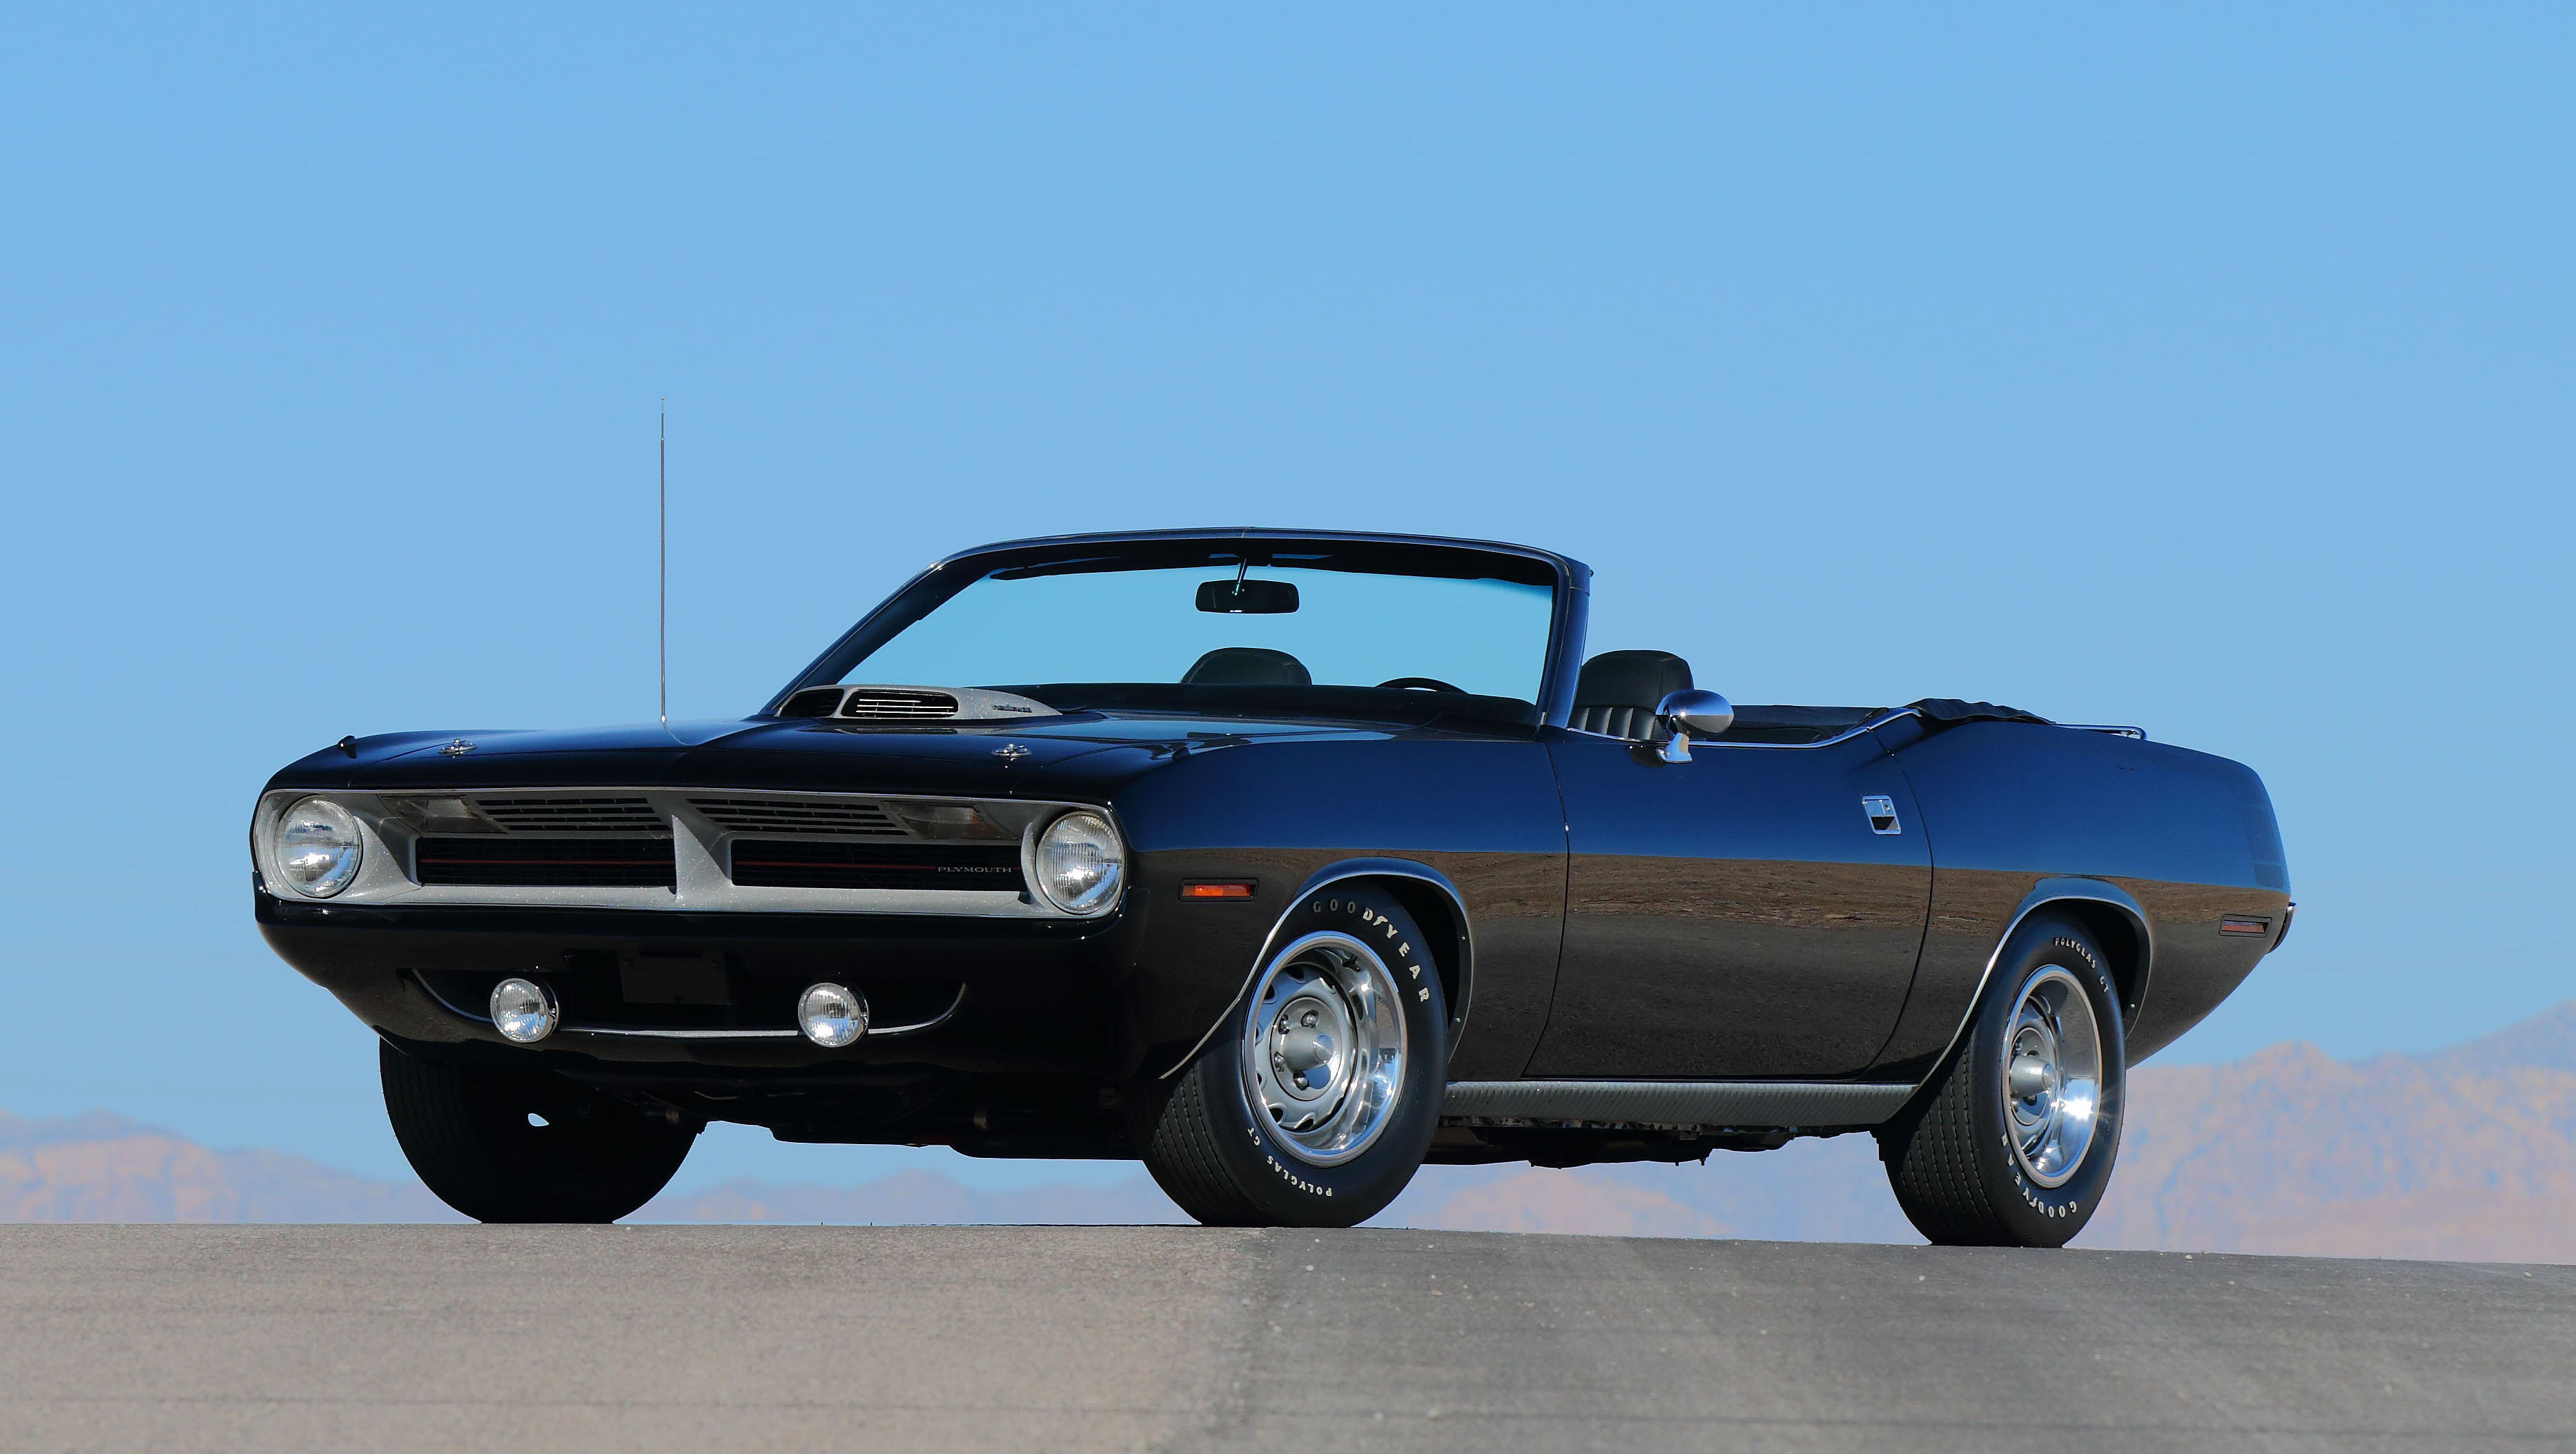 Rare 1970 Plymouth Hemi Cuda Convertible Going Under the Hammer ...